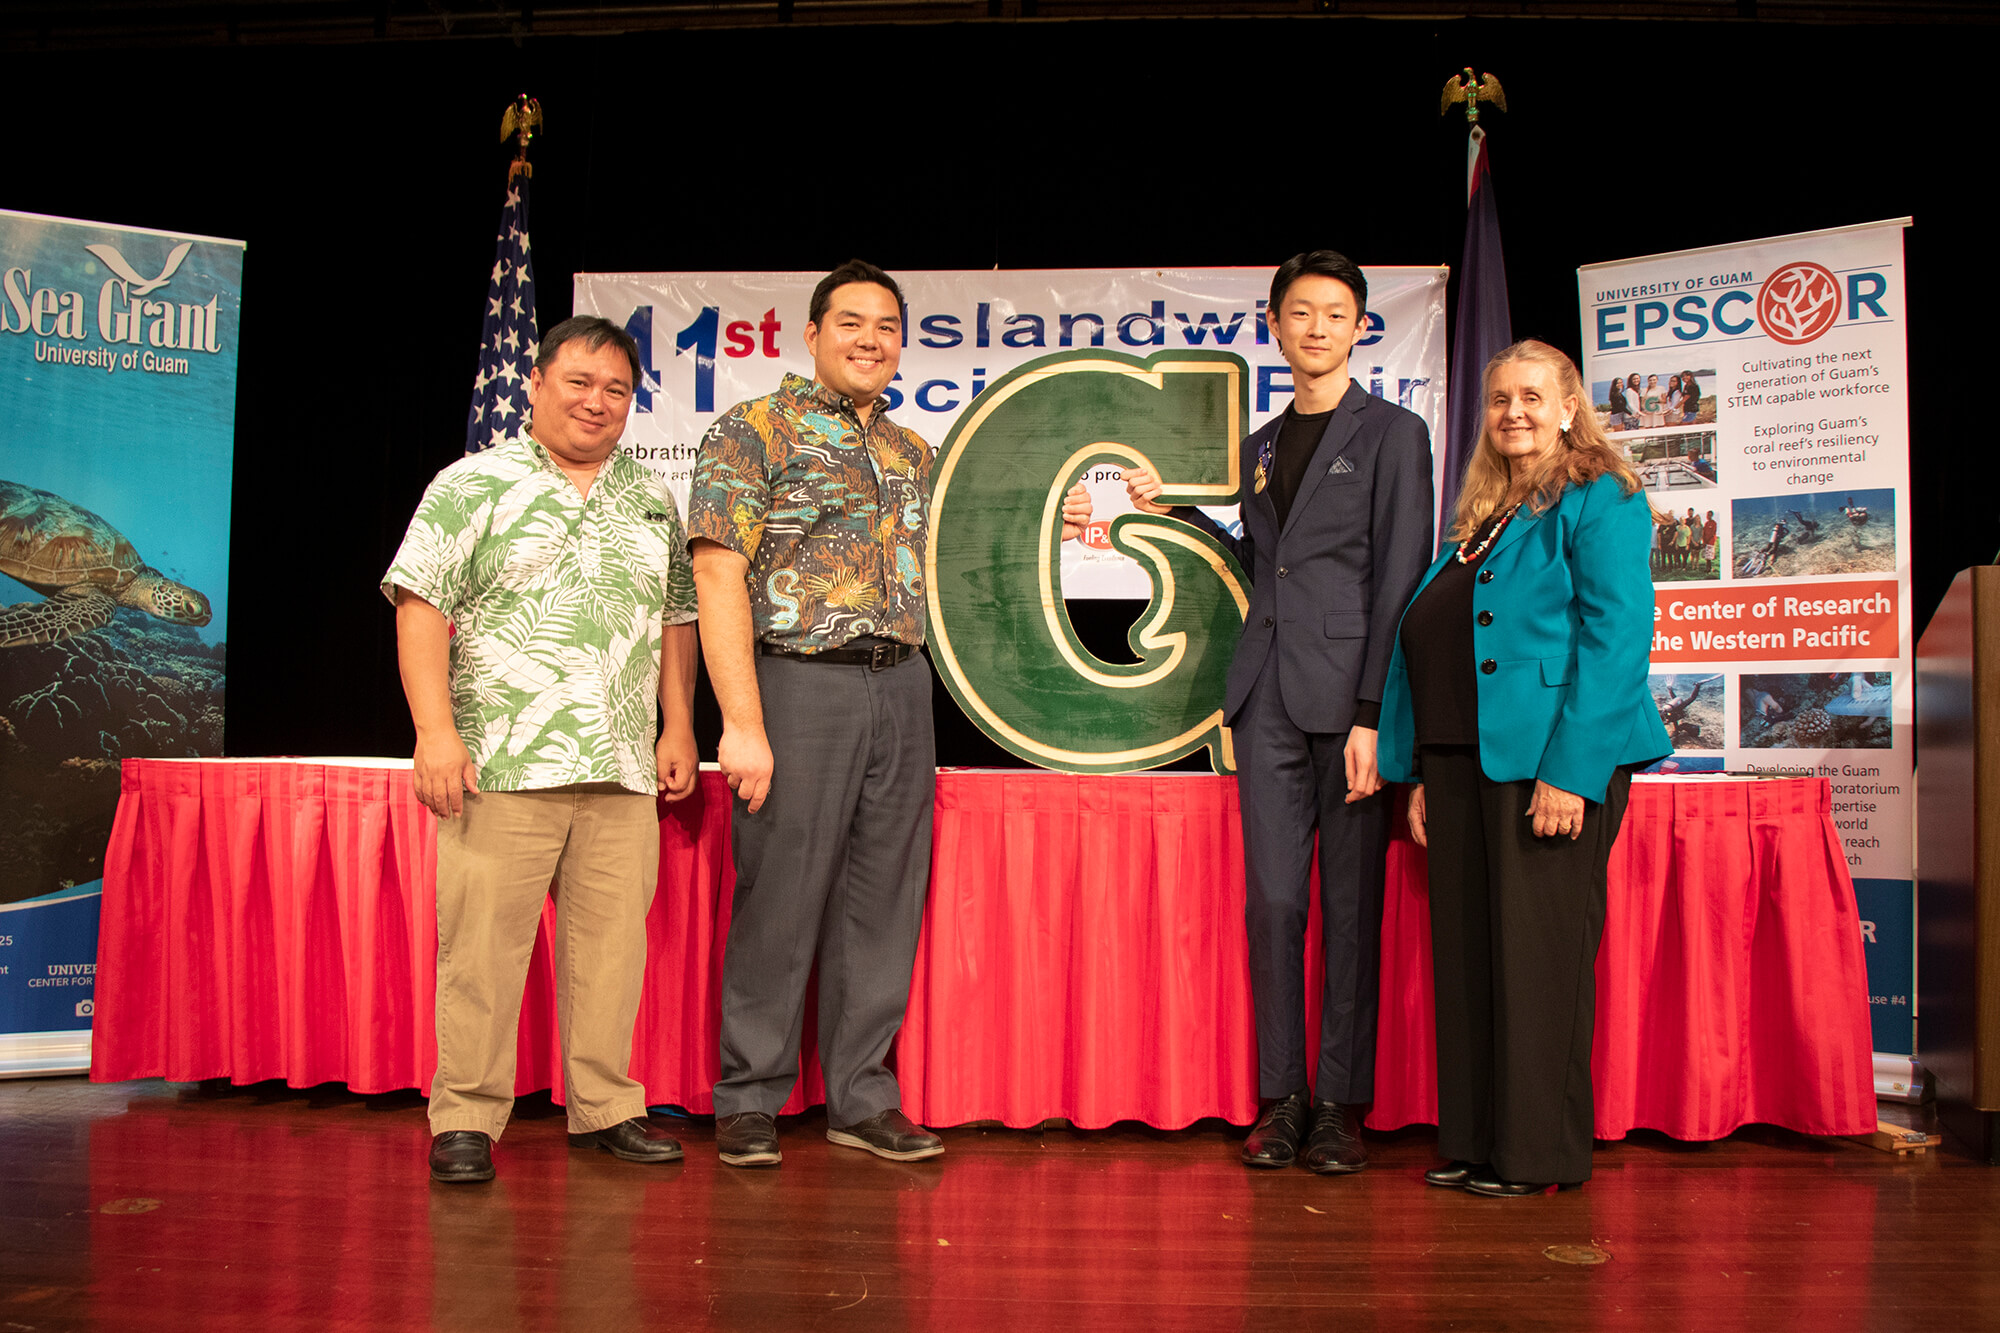 Daniel Z. Kang won the overall award for his division at the 41st Annual Island Wide Science Fair